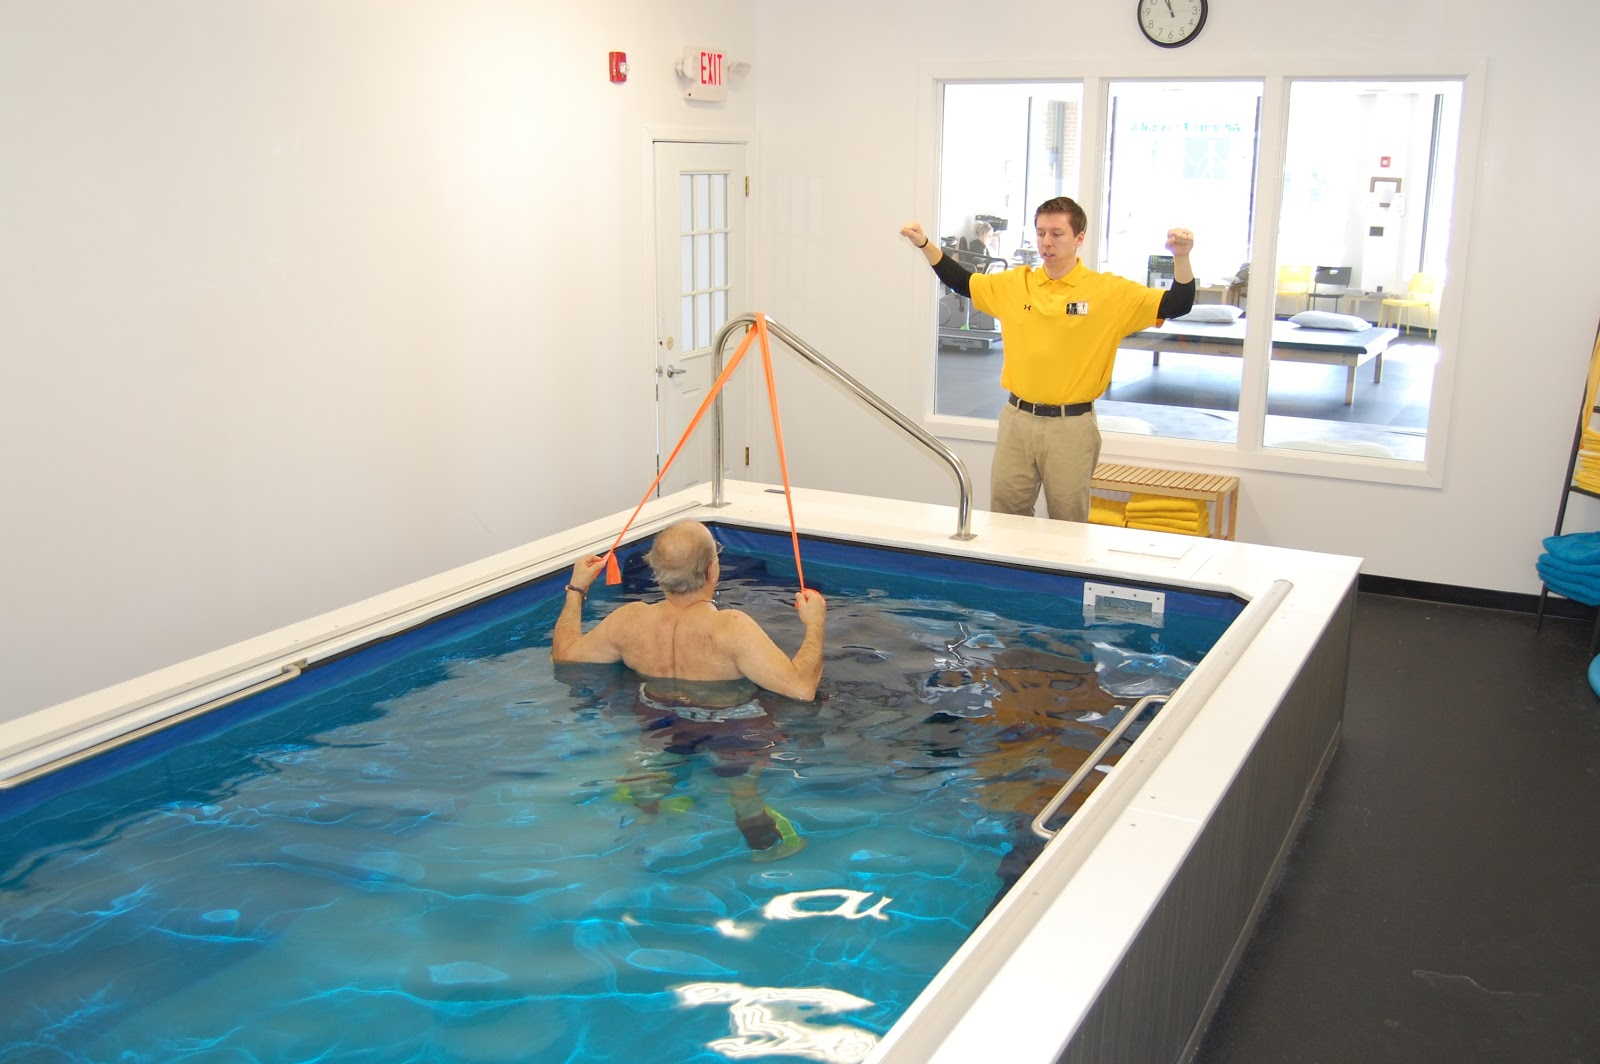 Five Aquatic Therapy Benefits From Endless Pools | Endless Pools Corporate  Blog